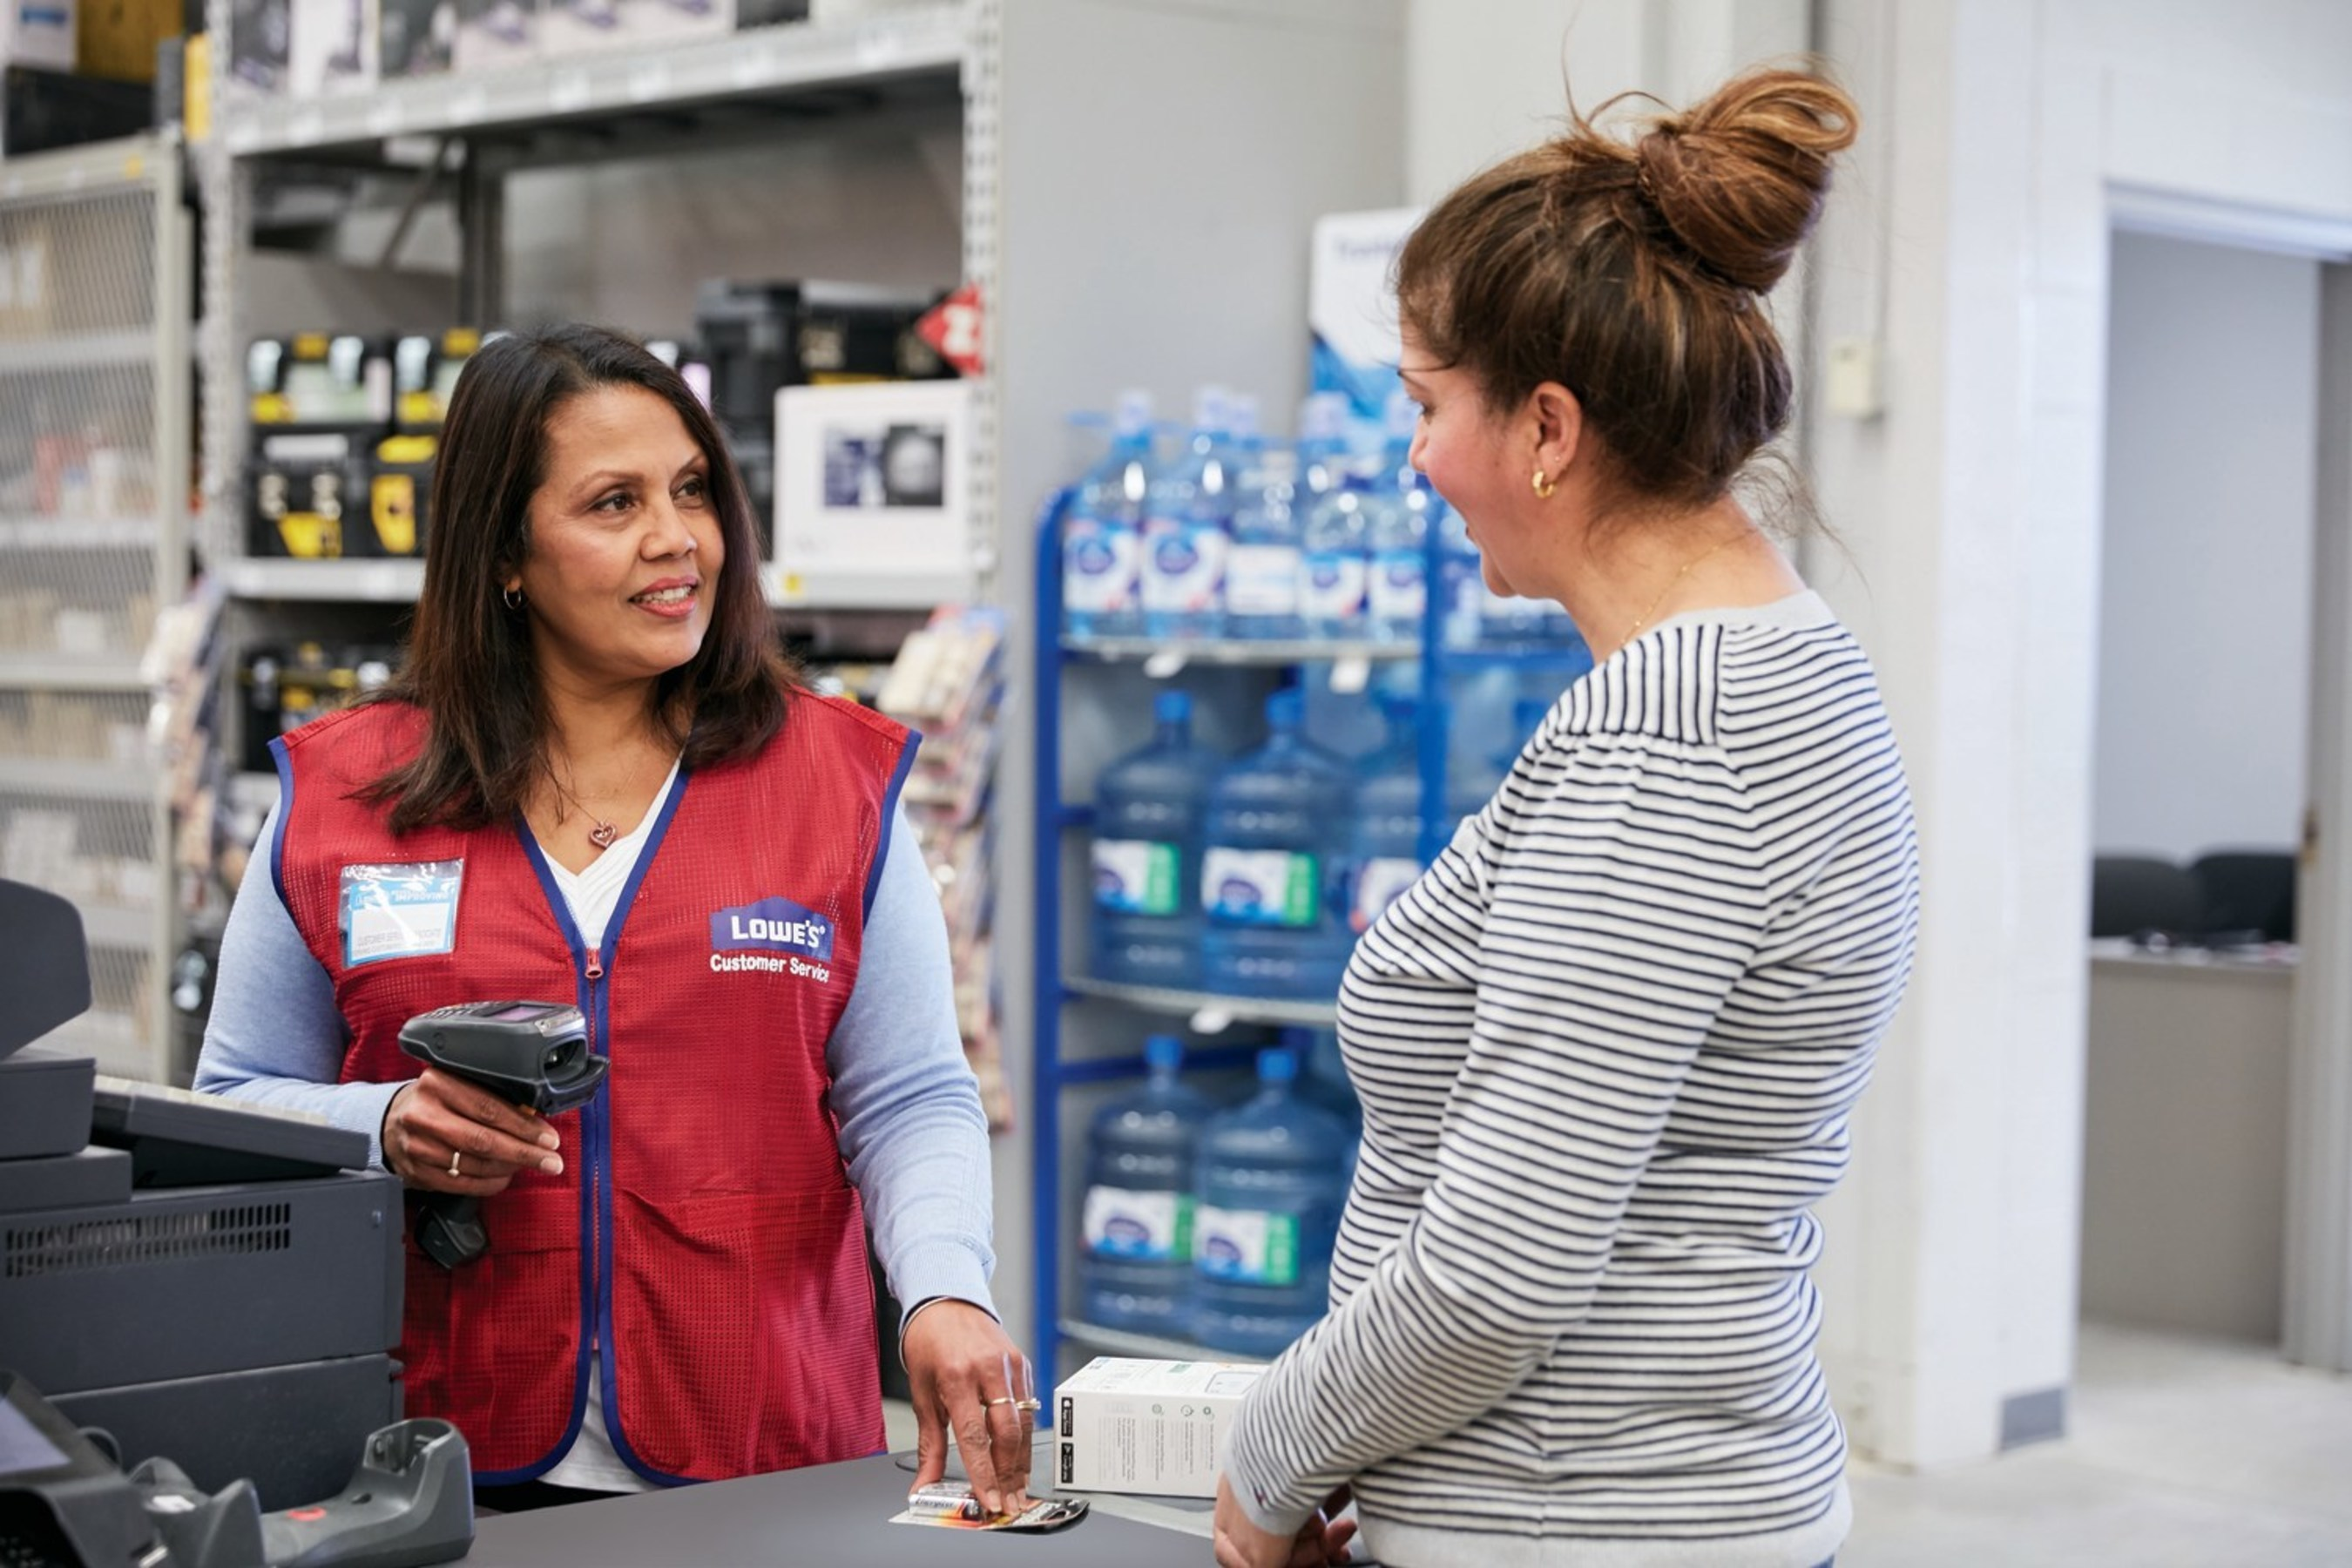 Lowe's Canada is recruiting to fill more than 6,350 positions in